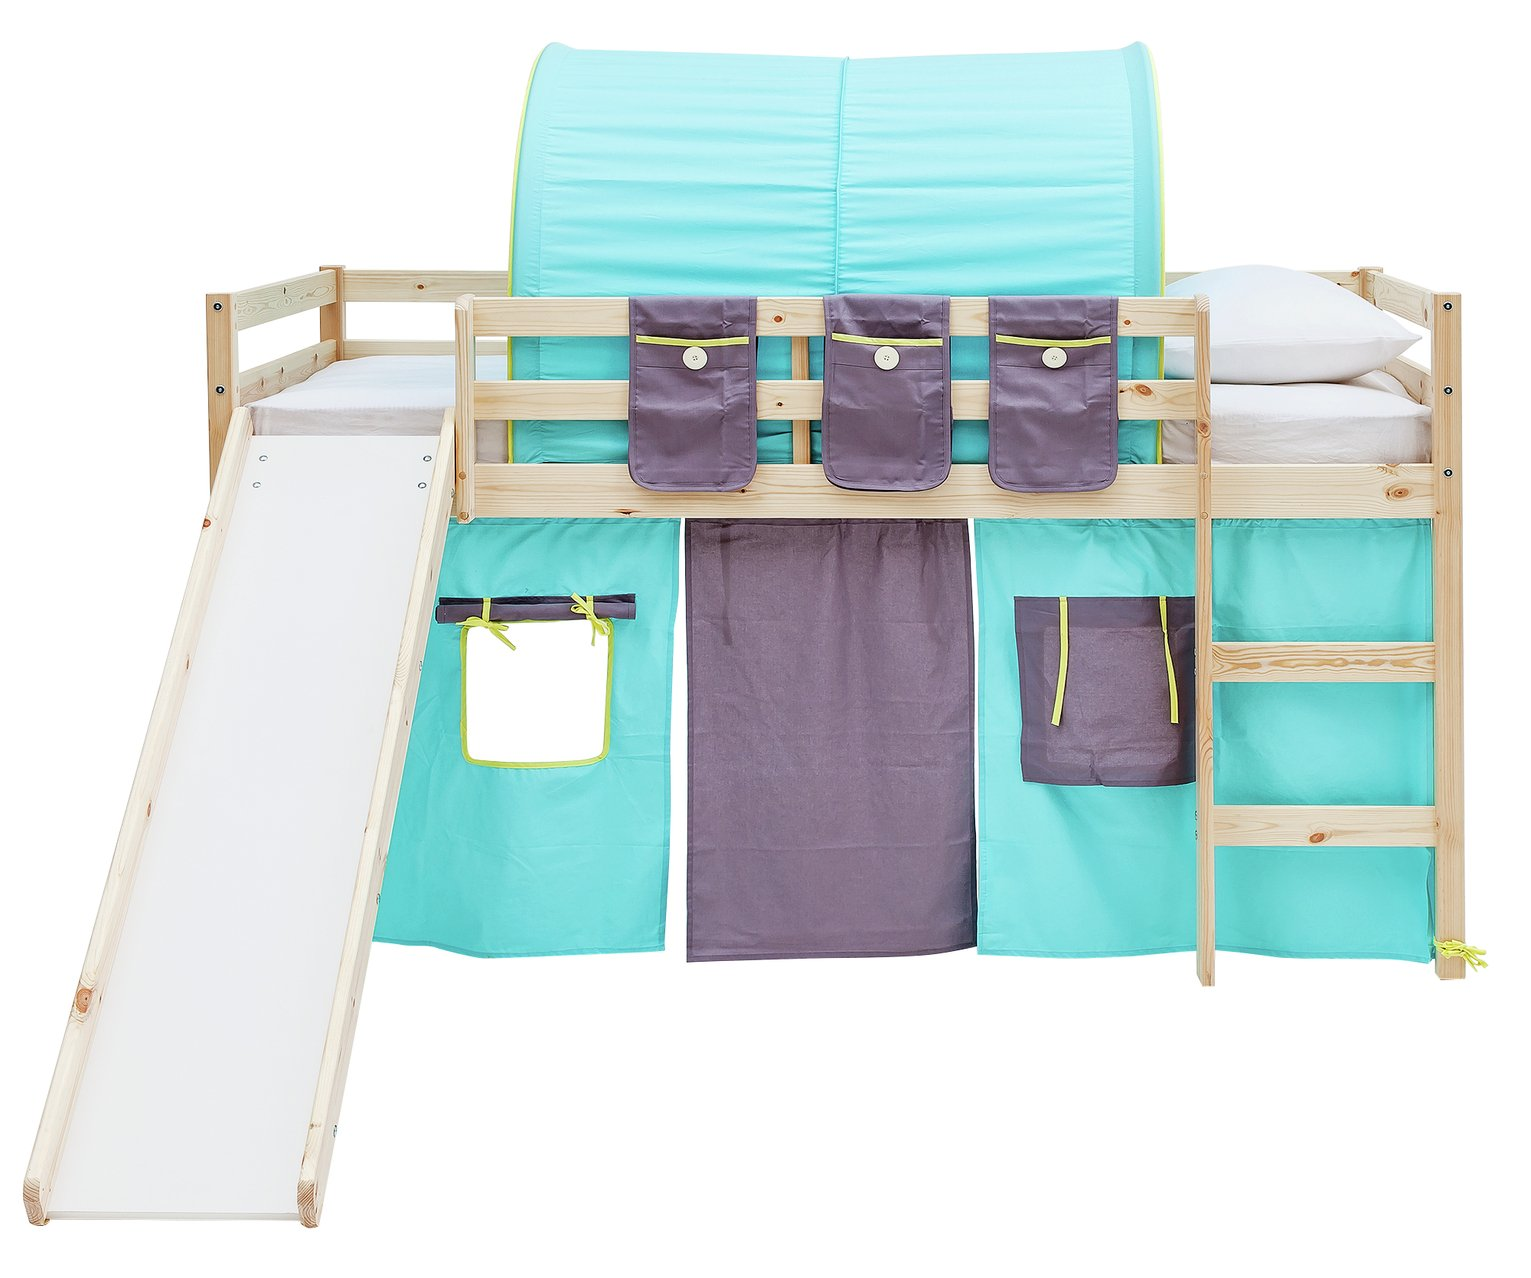 Argos Home Kaycie Pine Mid Sleeper with Slide & Blue Tent